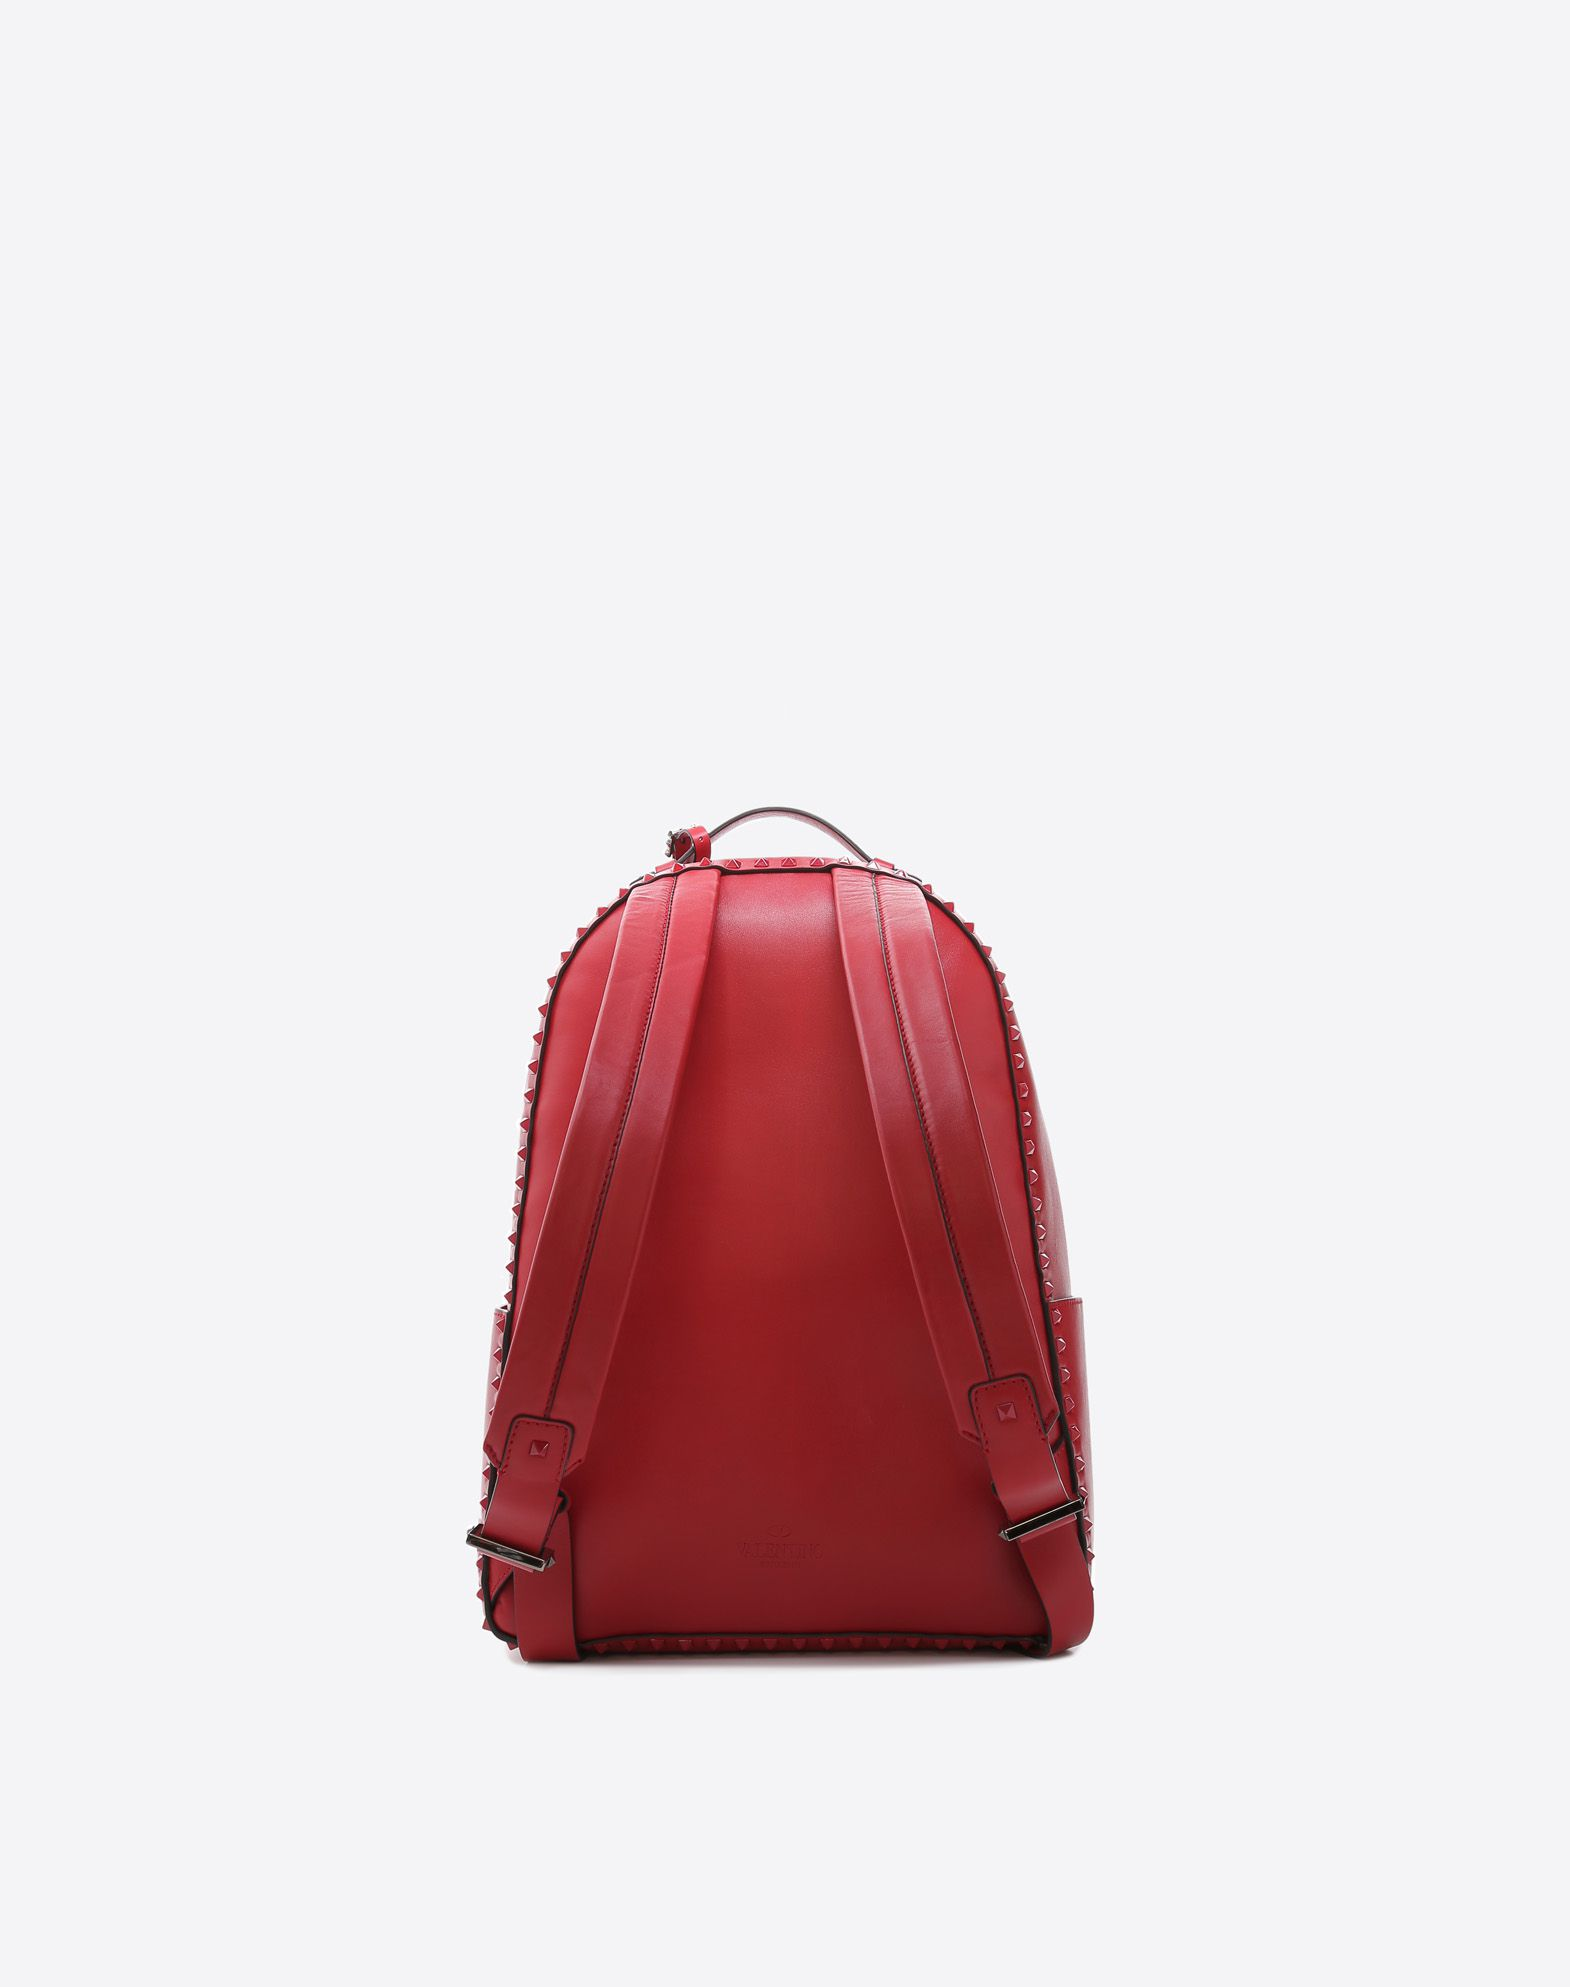 VALENTINO GARAVANI UOMO Rockstud Untitled Rosso Backpack Backpack U d